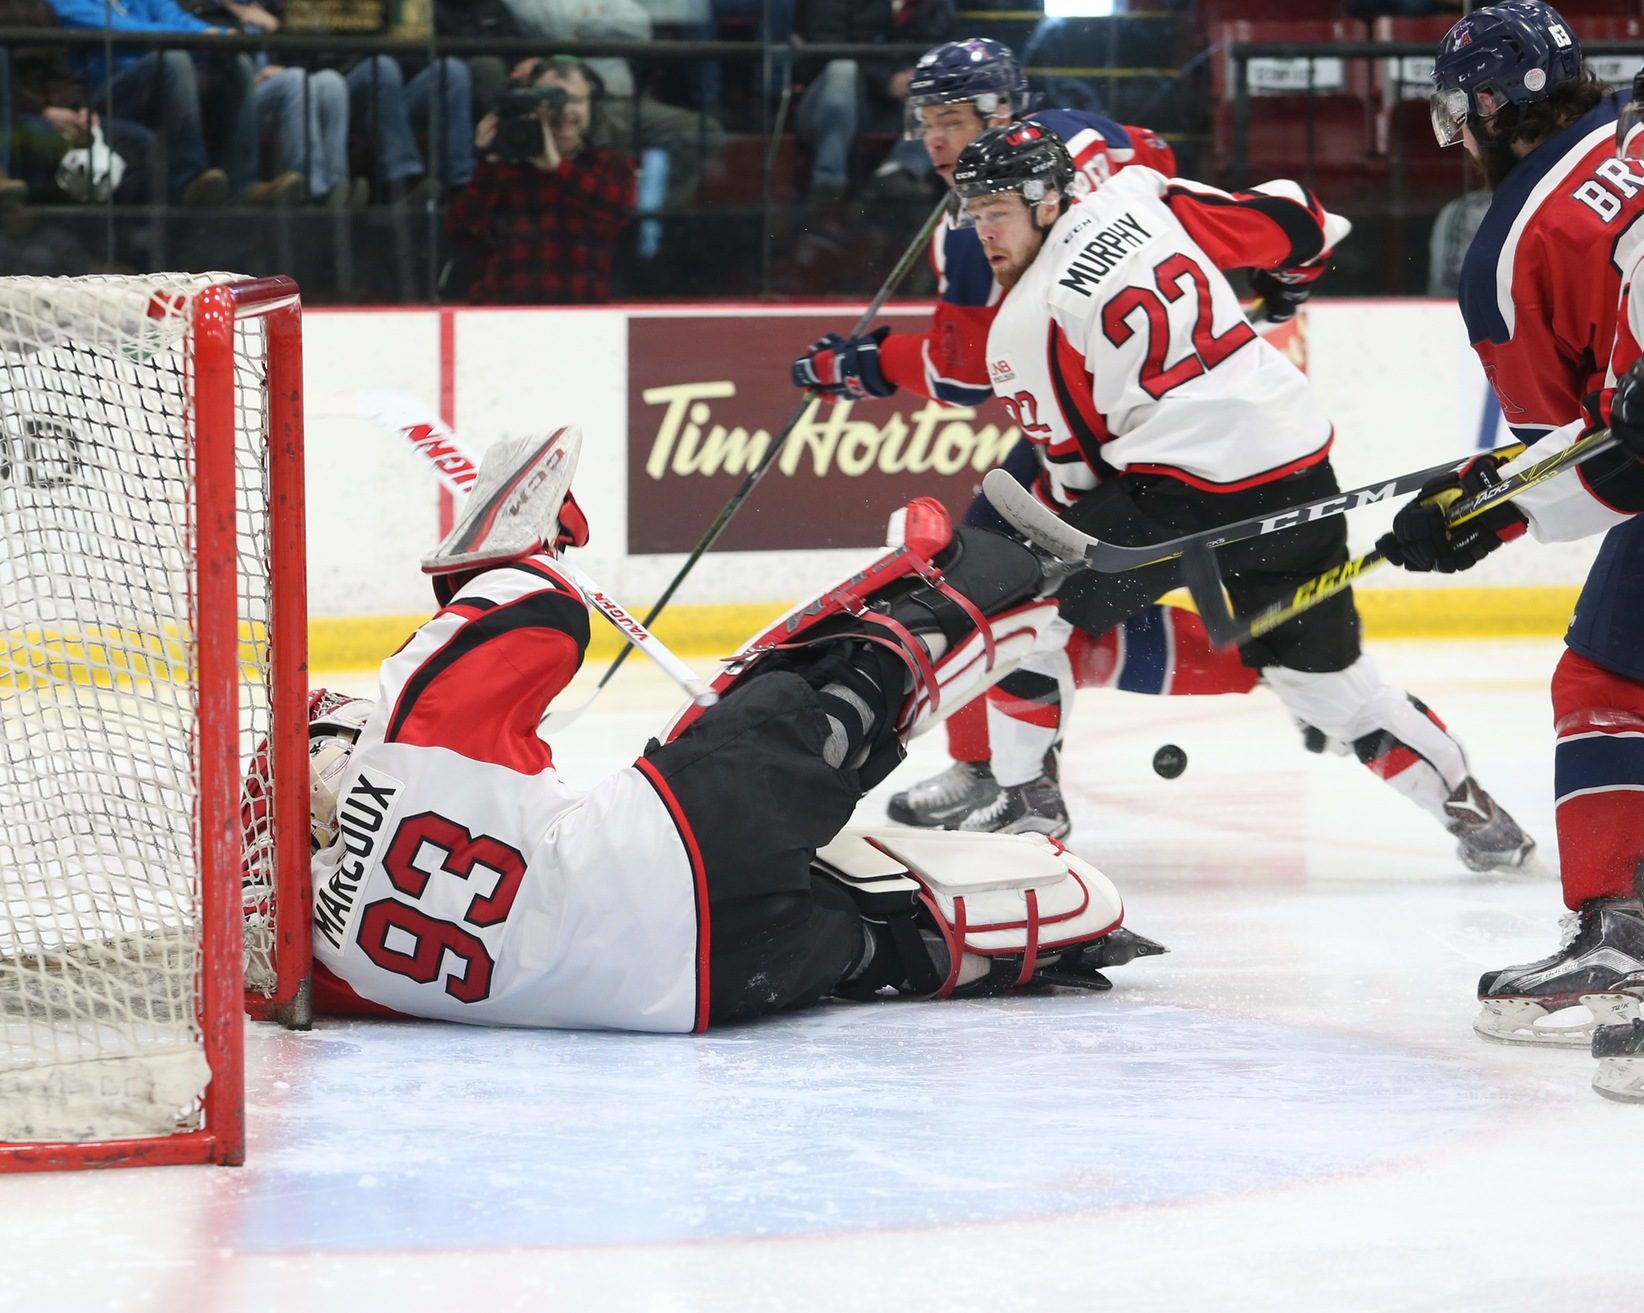 SEMI-FINAL #1 2017 U SPORTS Cavendish University Cup: UNB shuts out Axemen to advance to U Cup final